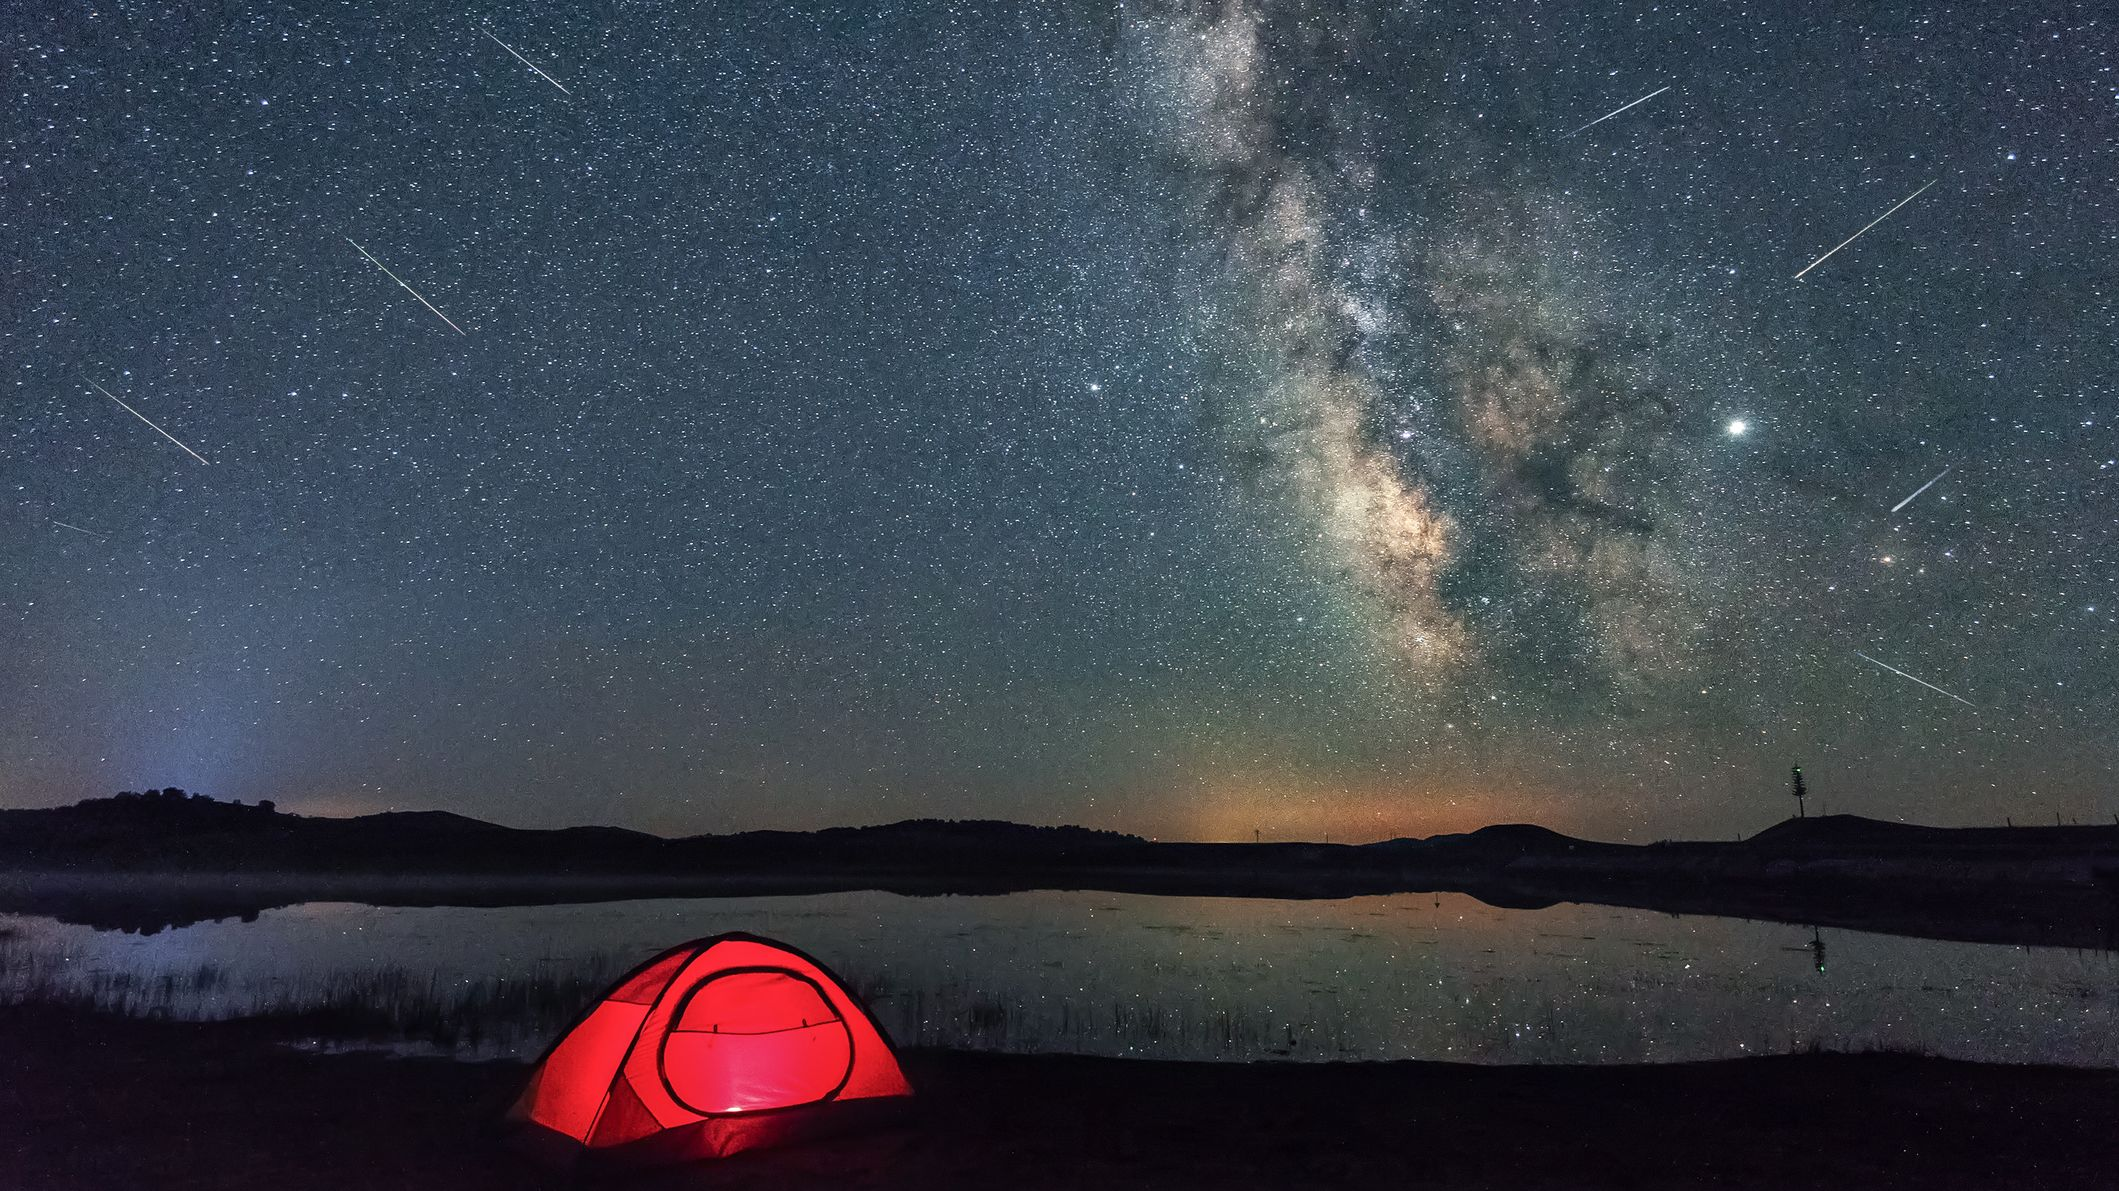 The Perseid Meteor Shower Will Produce Up to 100 Meteors an Hour this August